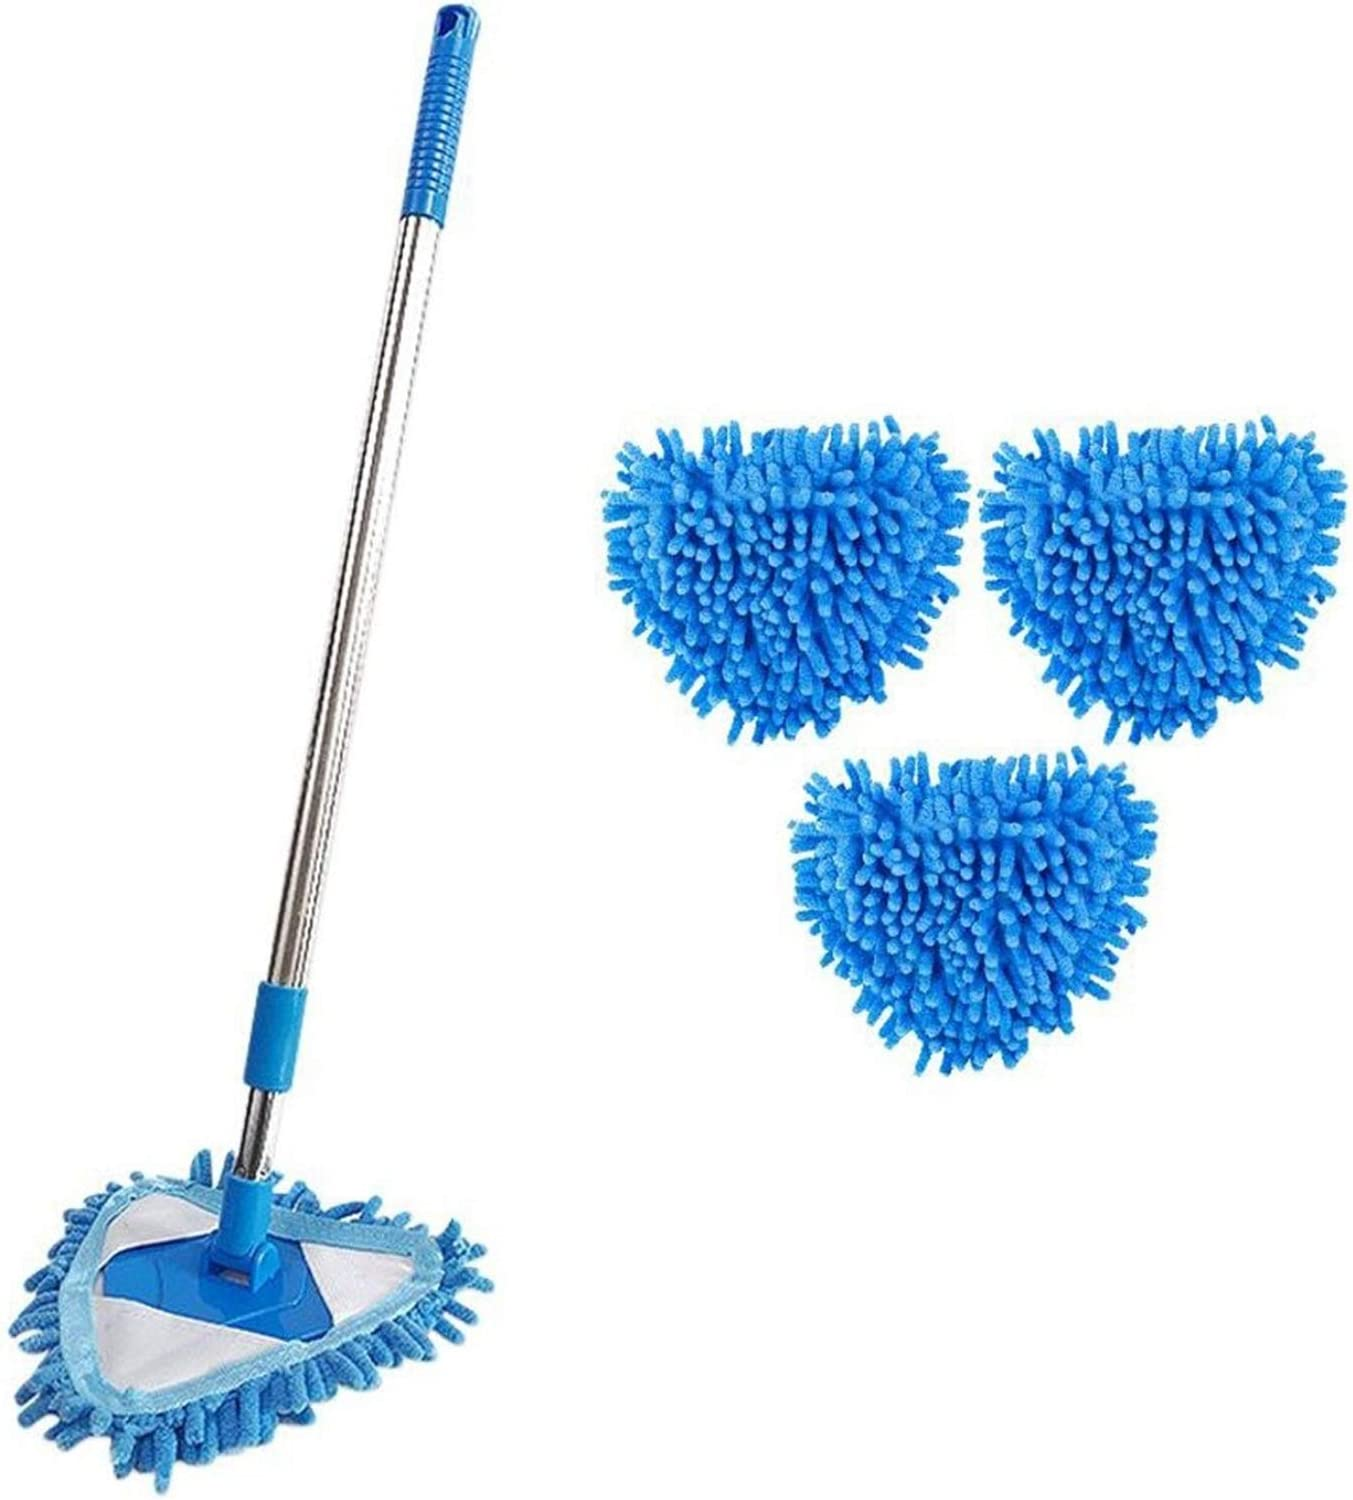 Blue Mini Microfiber Mop Rotatable 180 B to Clean Max Manufacturer OFFicial shop 85% OFF Easy Degrees